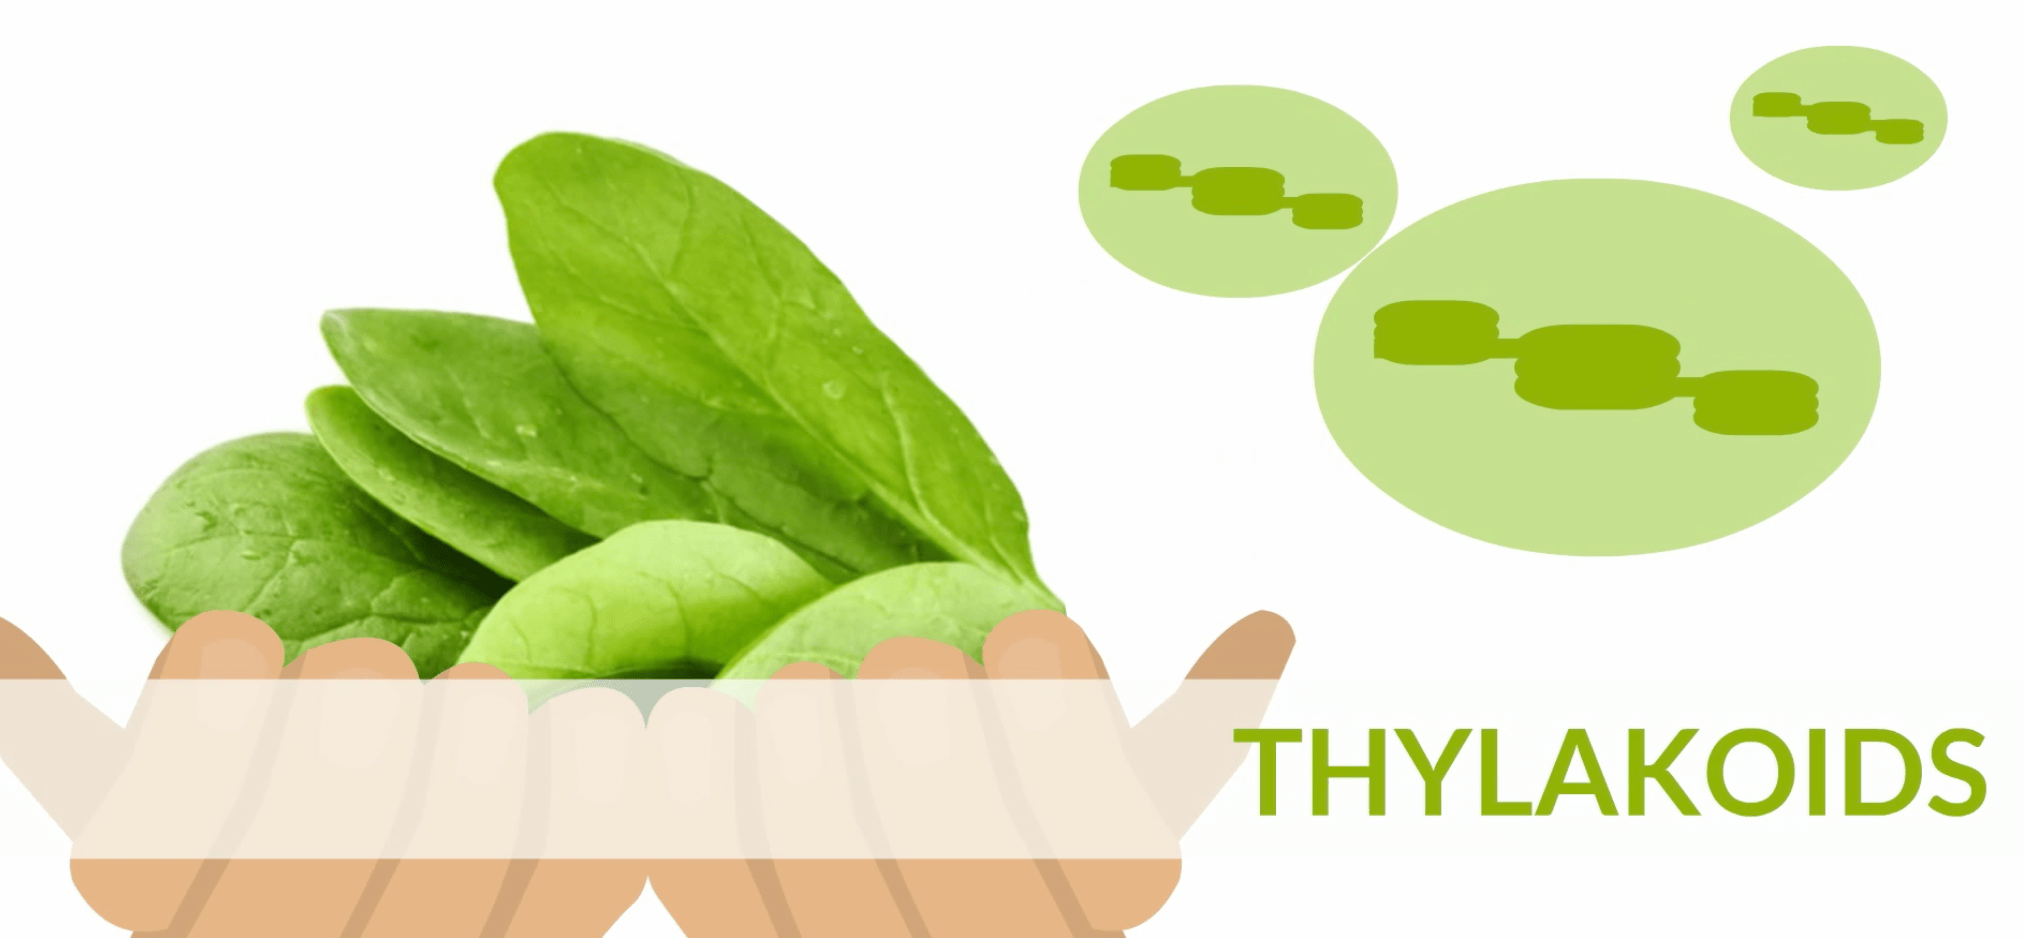 Simple Spinach Thylakoids